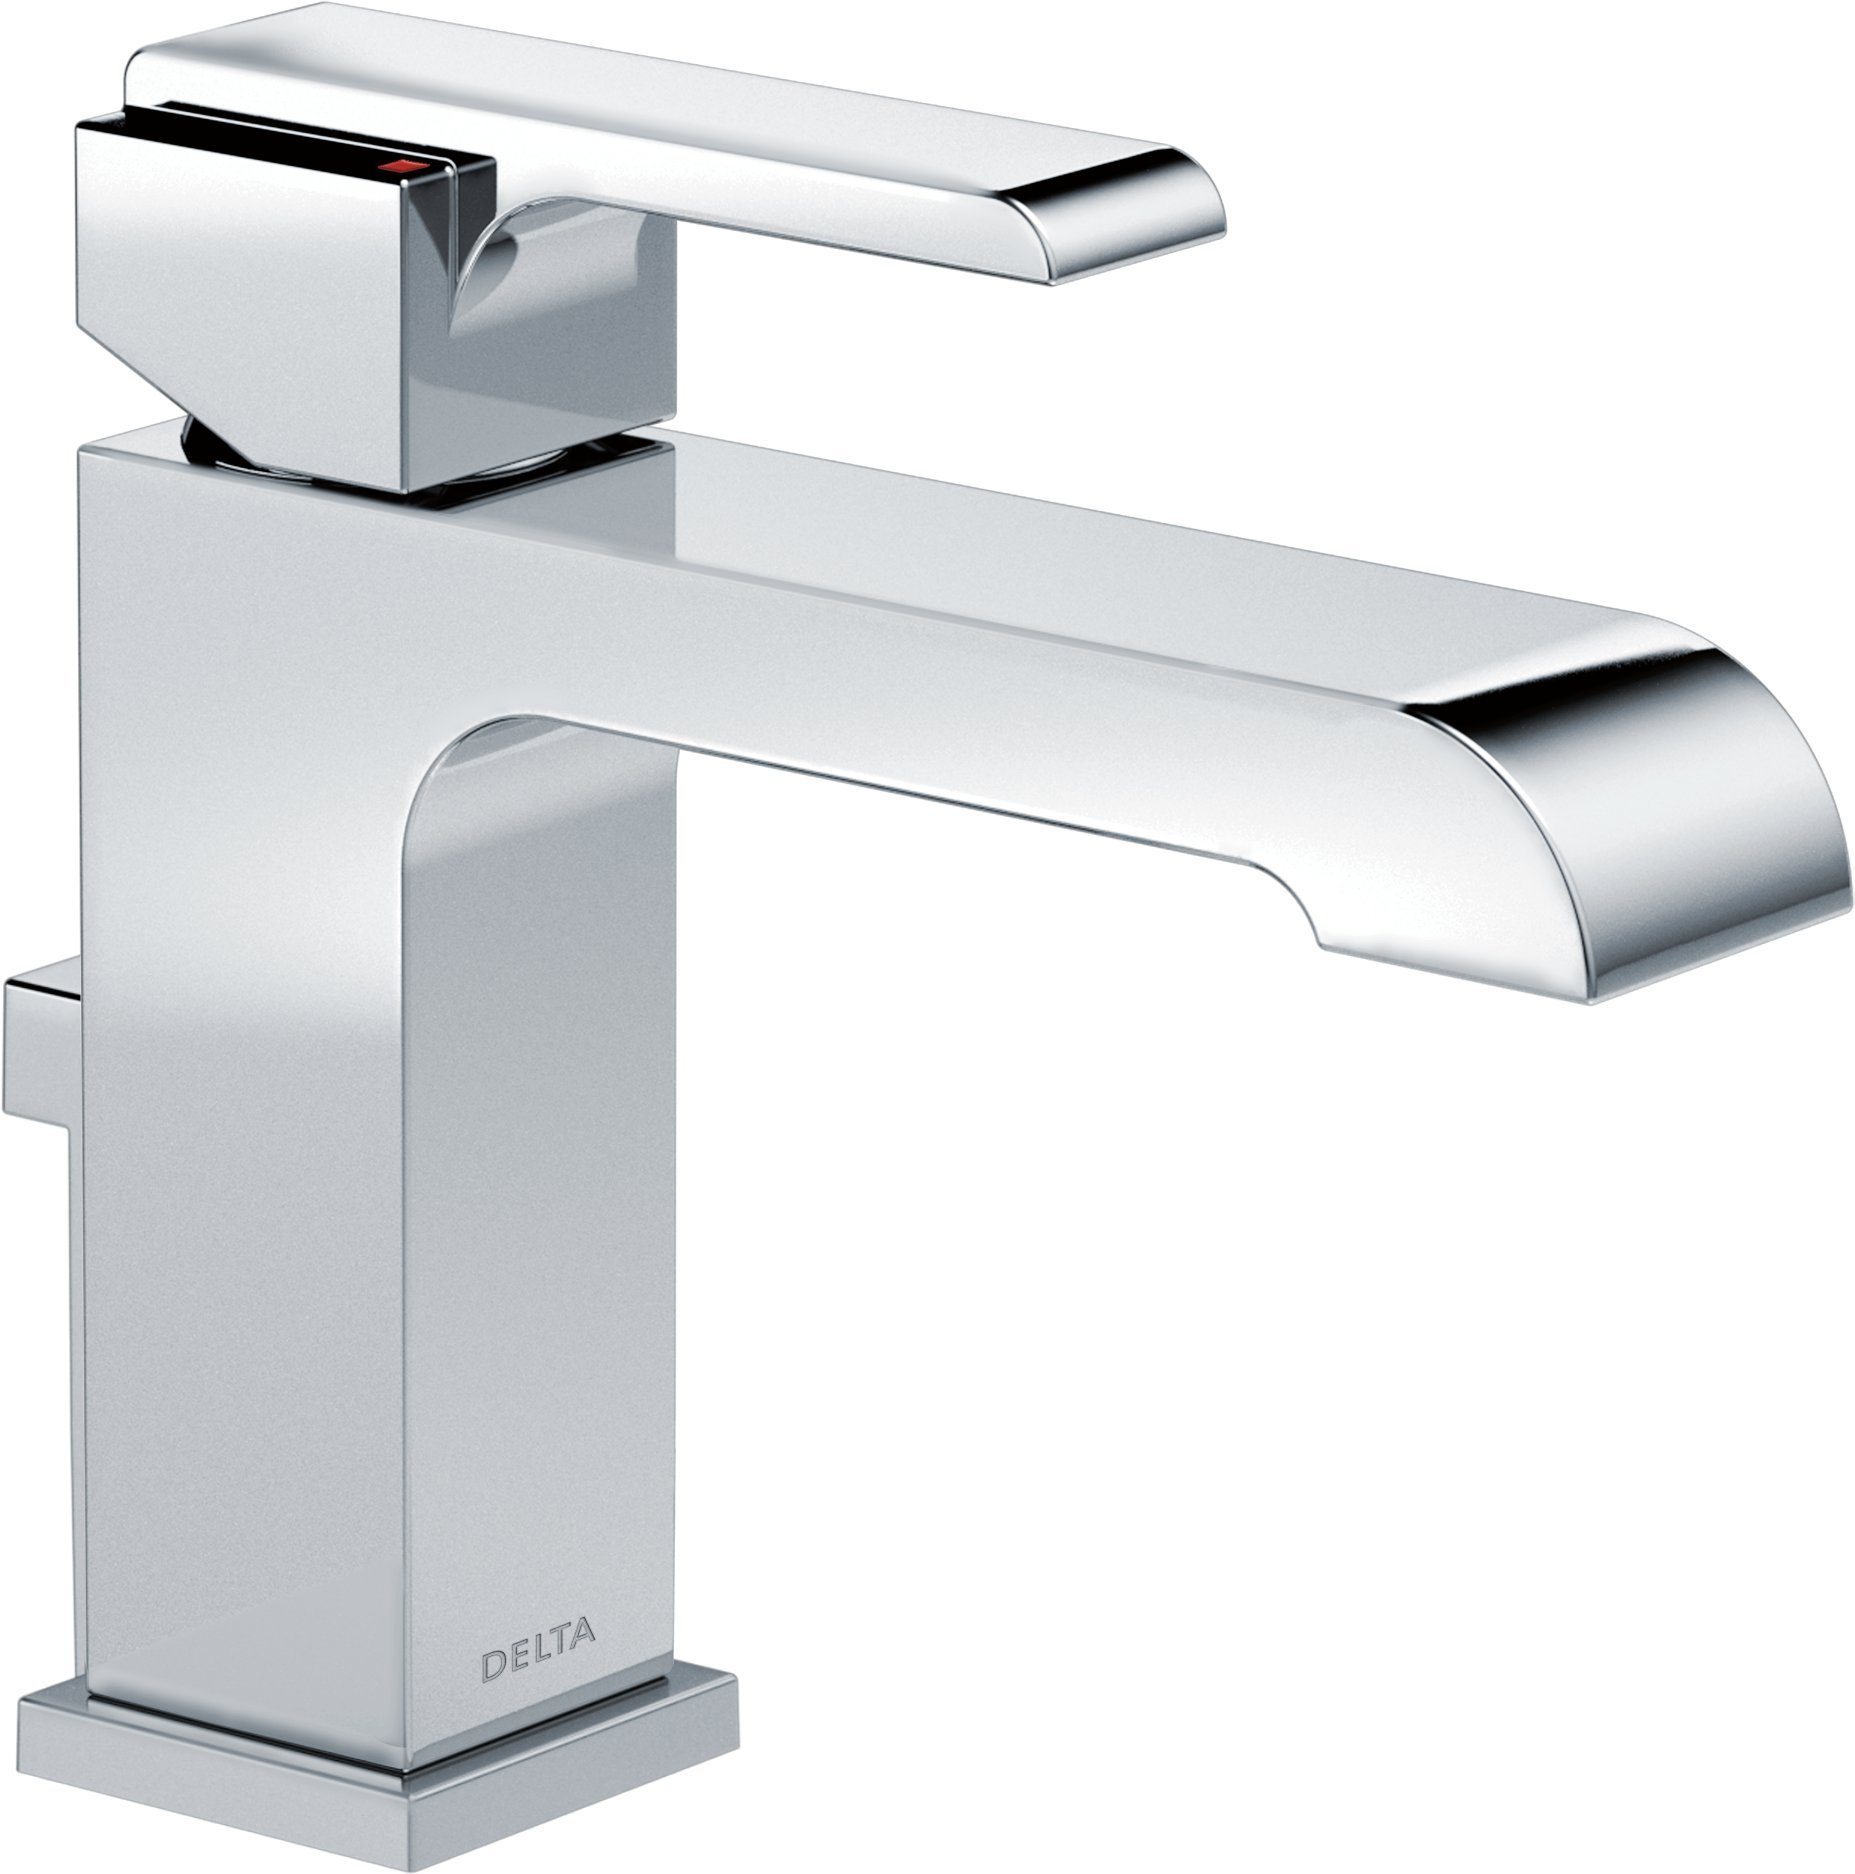 Delta Faucet 567LF-HGM-MPU Ara, Single Handle Bathroom 5 GPM, Chrome by DELTA FAUCET